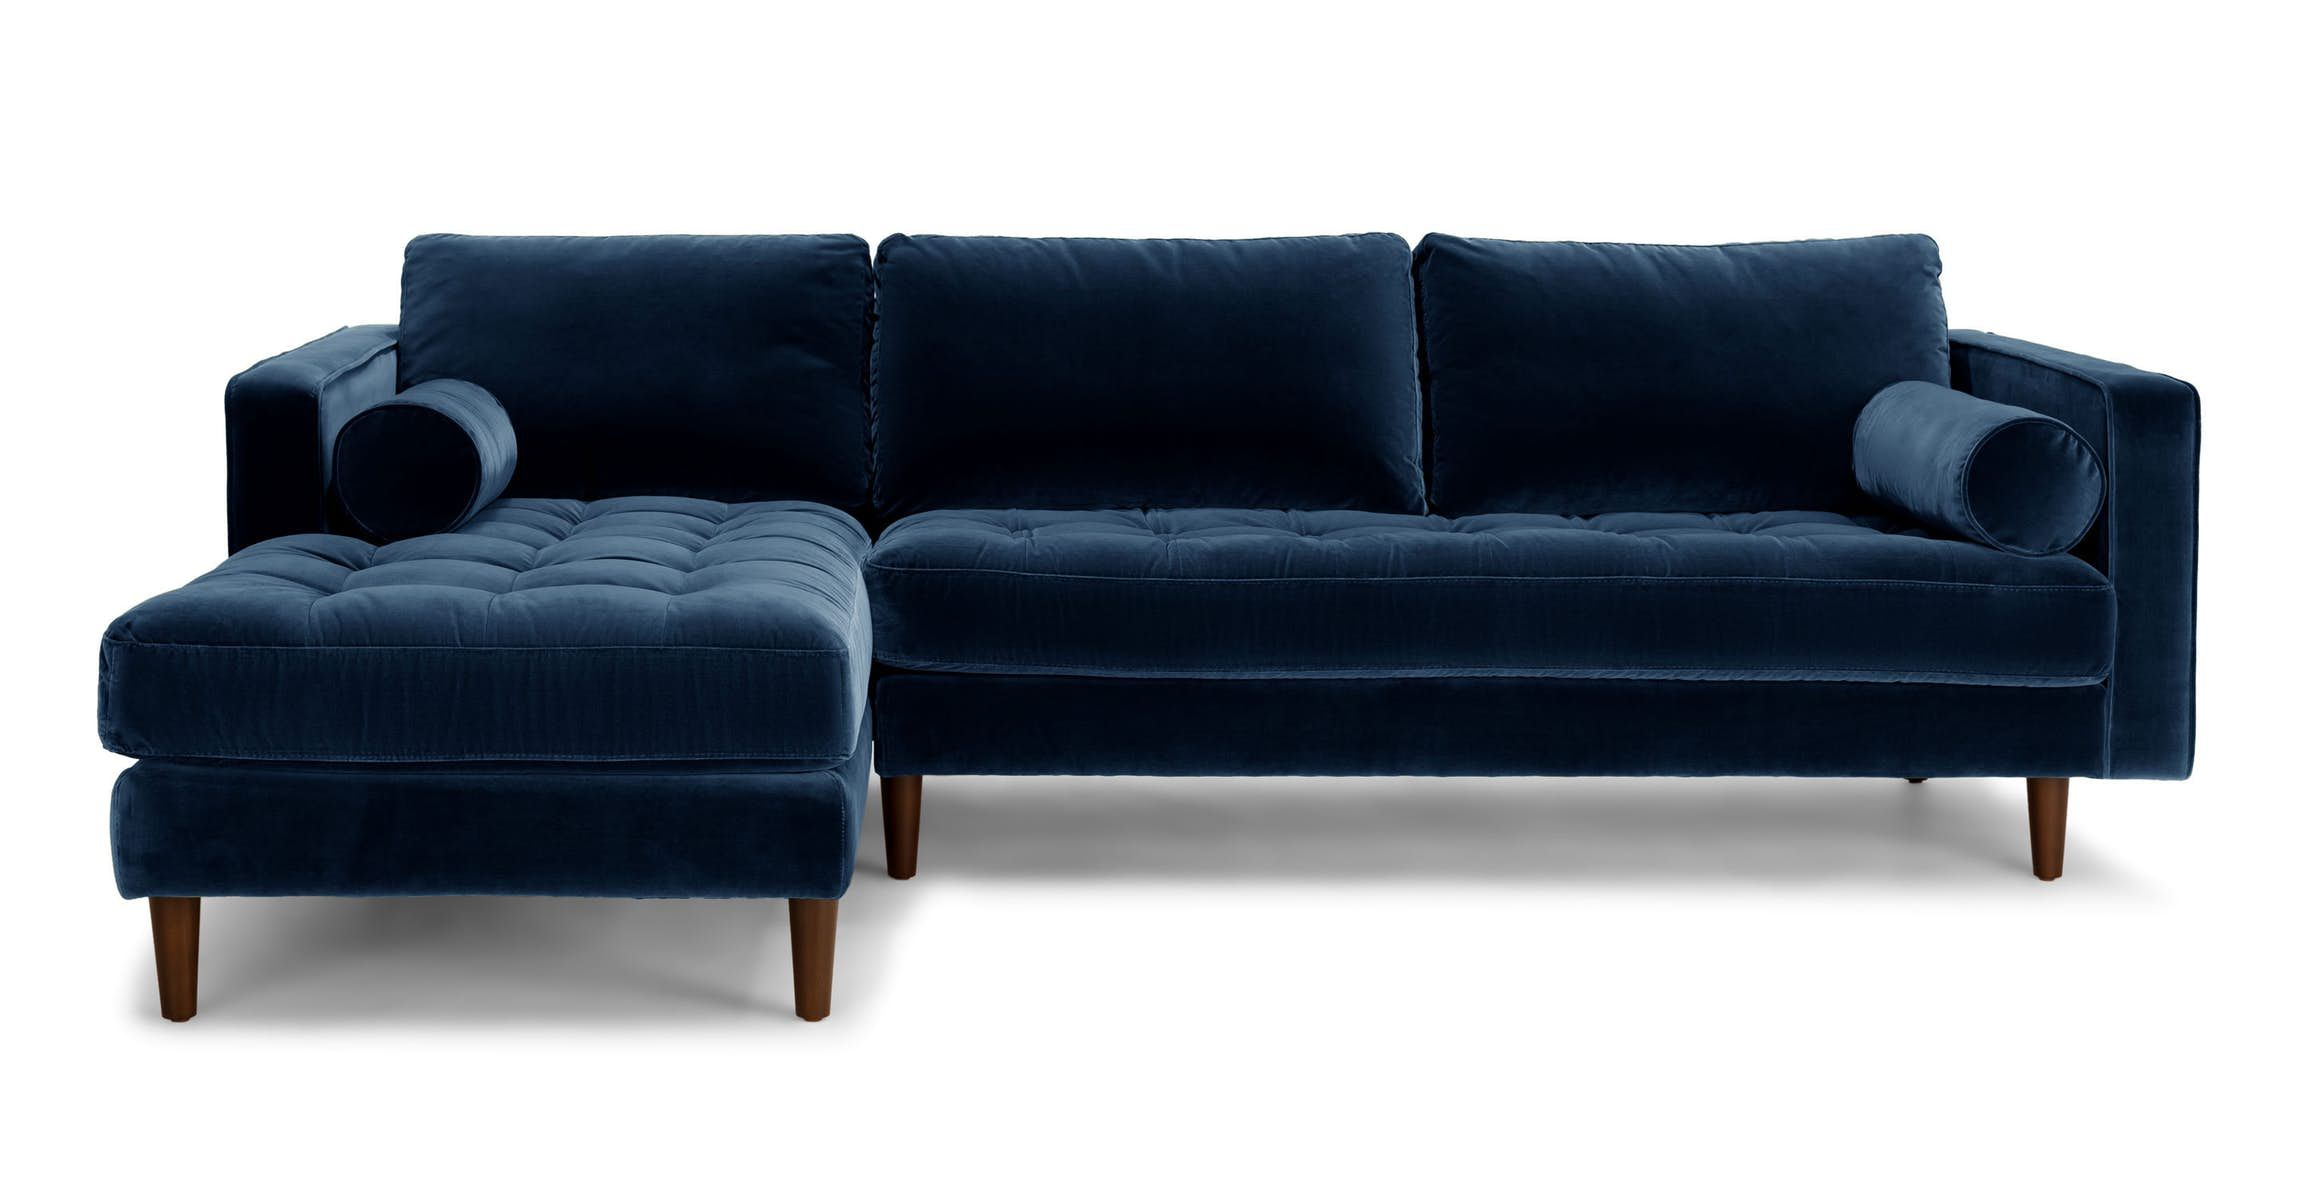 Mid Century Modern Sofas Couches Article Sectional Sofa Modern Sofa Sectional Velvet Sectional